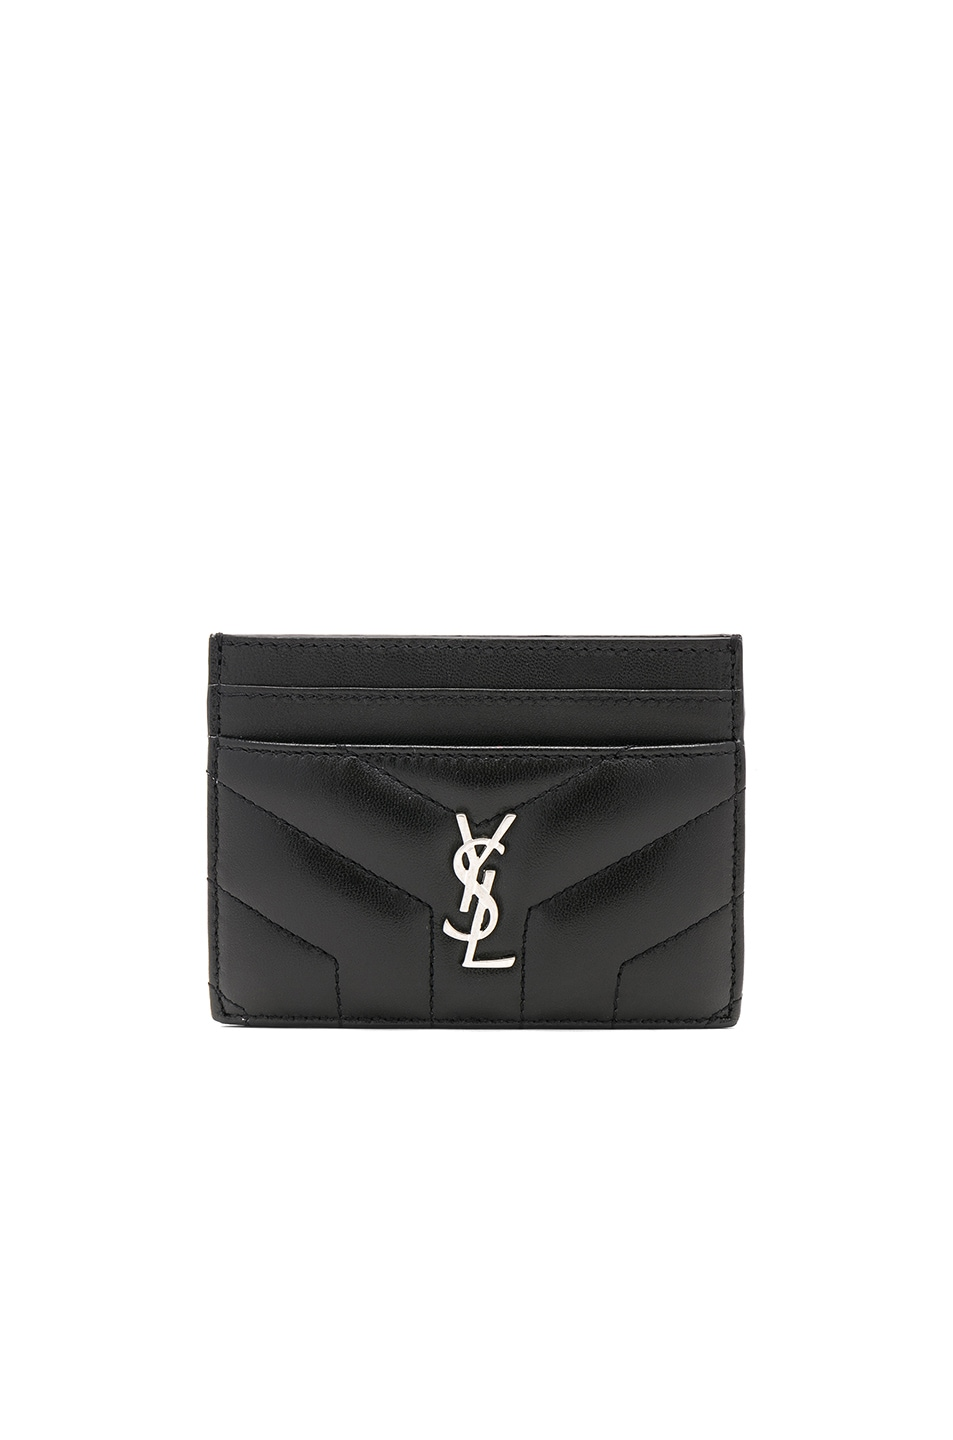 Image 1 of Saint Laurent Monogramme Loulou Credit Card Case in Black